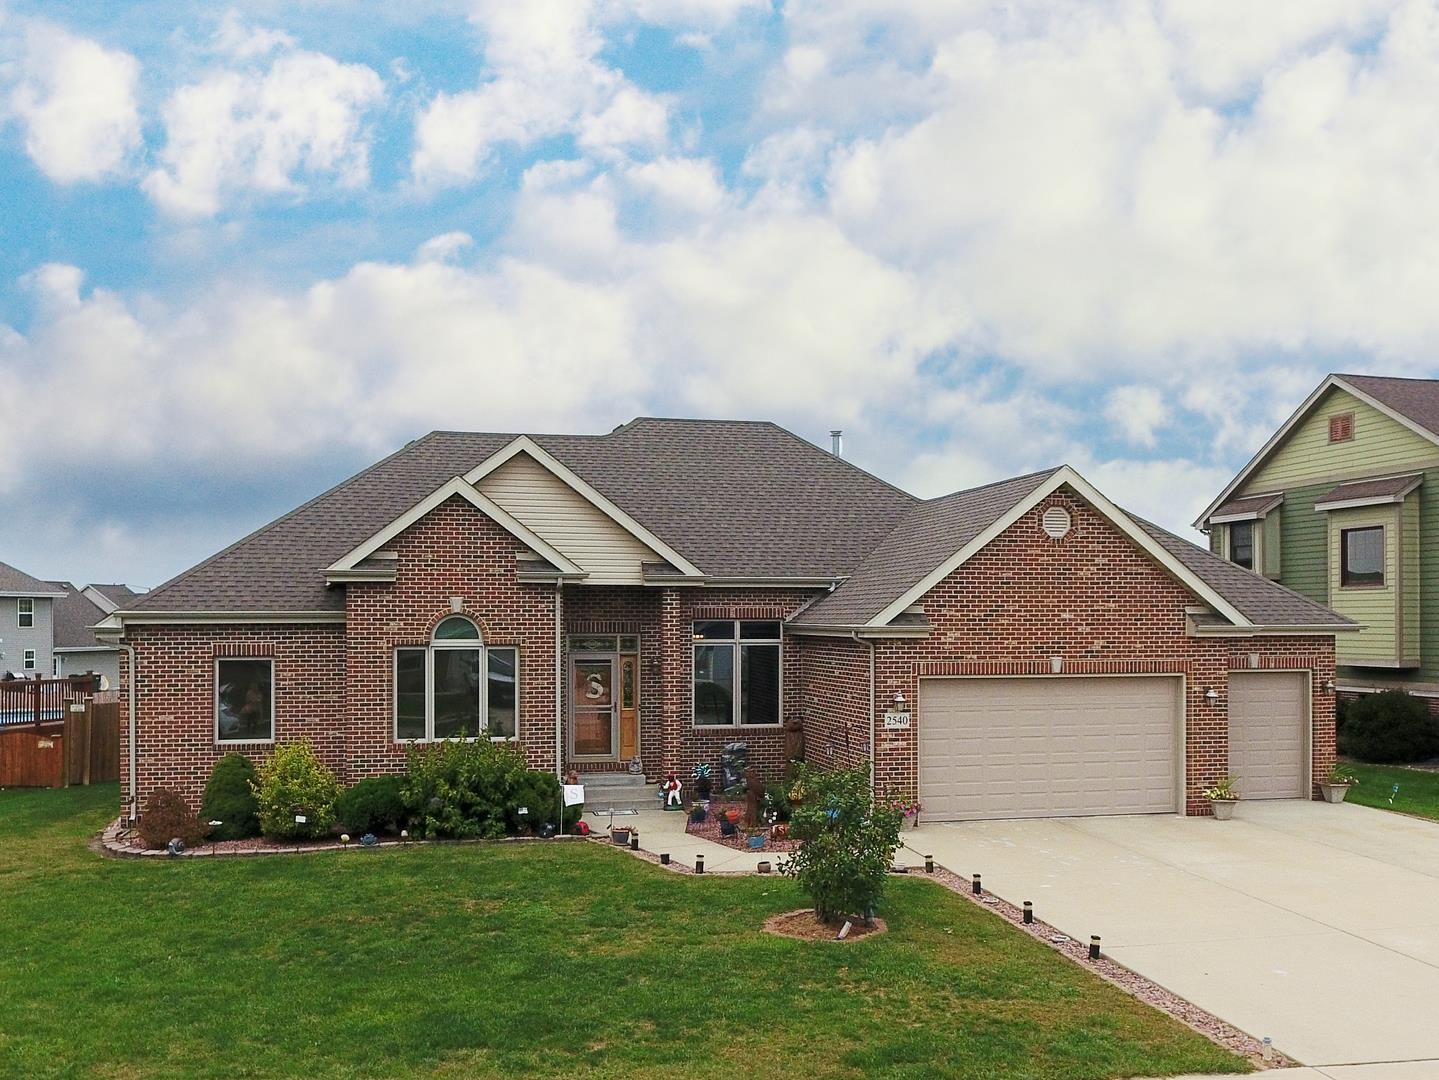 2540 E Girot Lane E, Diamond, IL 60416 - #: 10848541